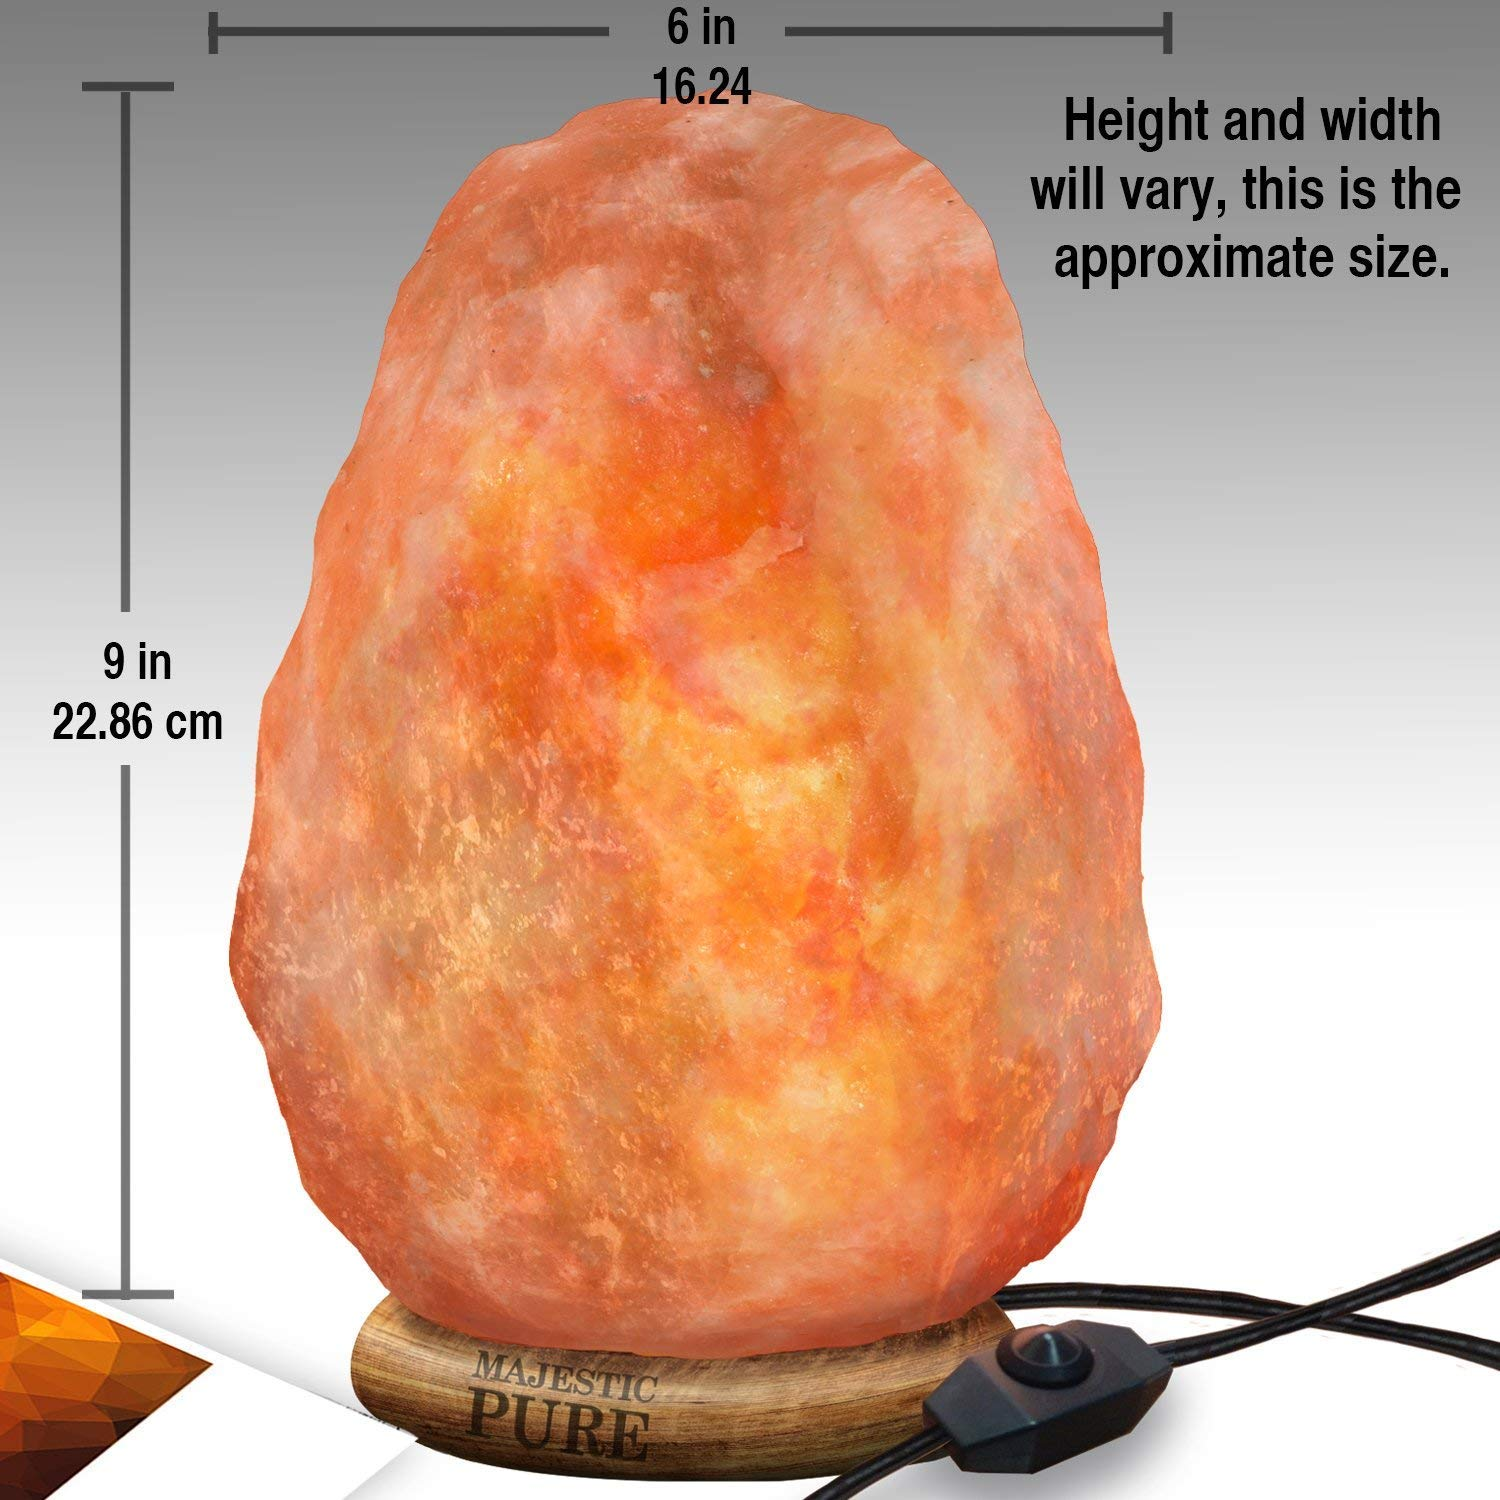 Majestic Pure Himalayan Salt Lamp - Natural Pink Salt Rock Lamp, Hand Carved, Wooden Base, Brightness Dimmer, 3 Bulbs, UL-Listed Cord and Gift Box, 8-11 lbs by Majestic Pure (Image #9)